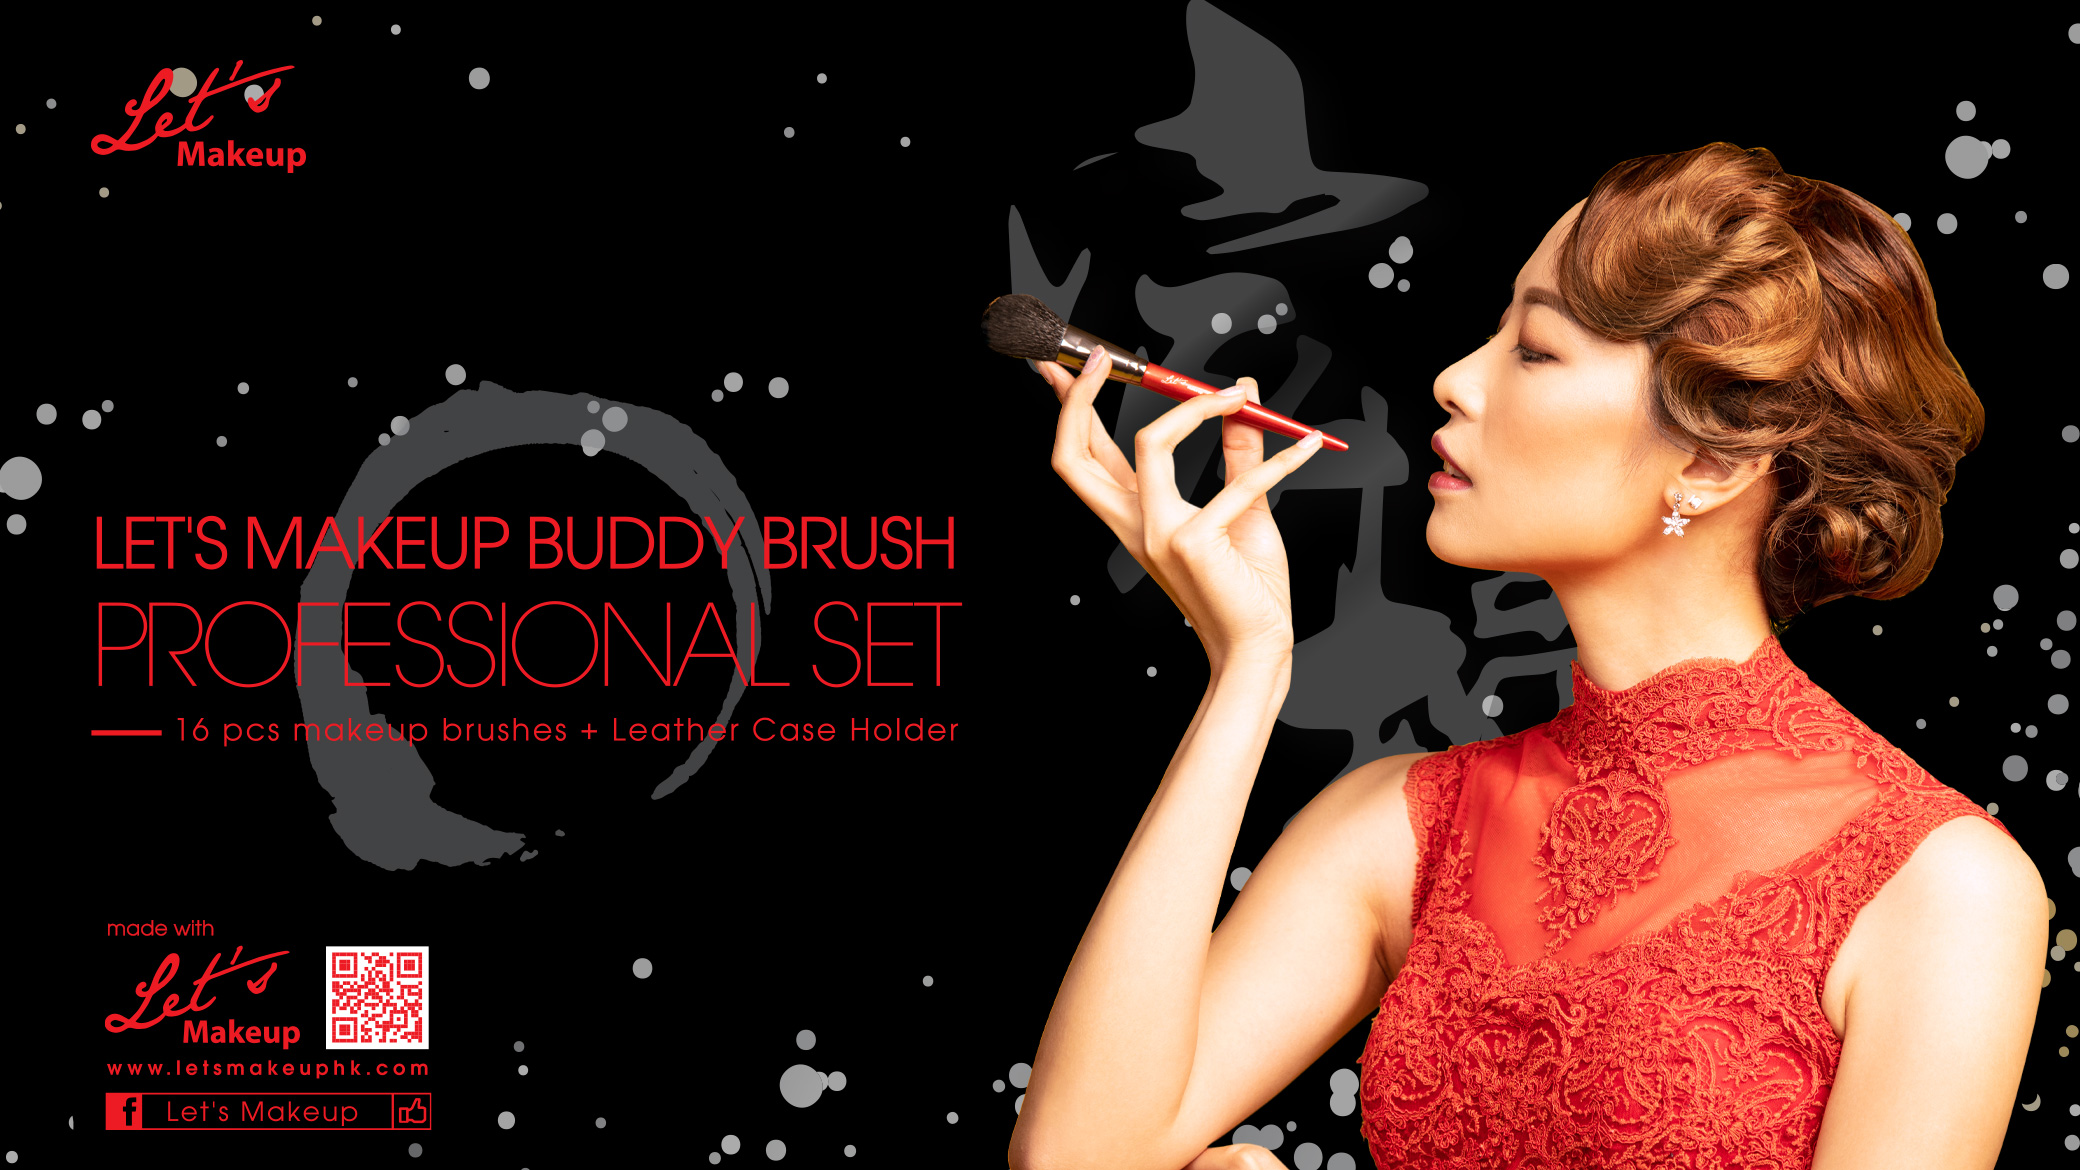 Let's makeup buddy brush promotional poster